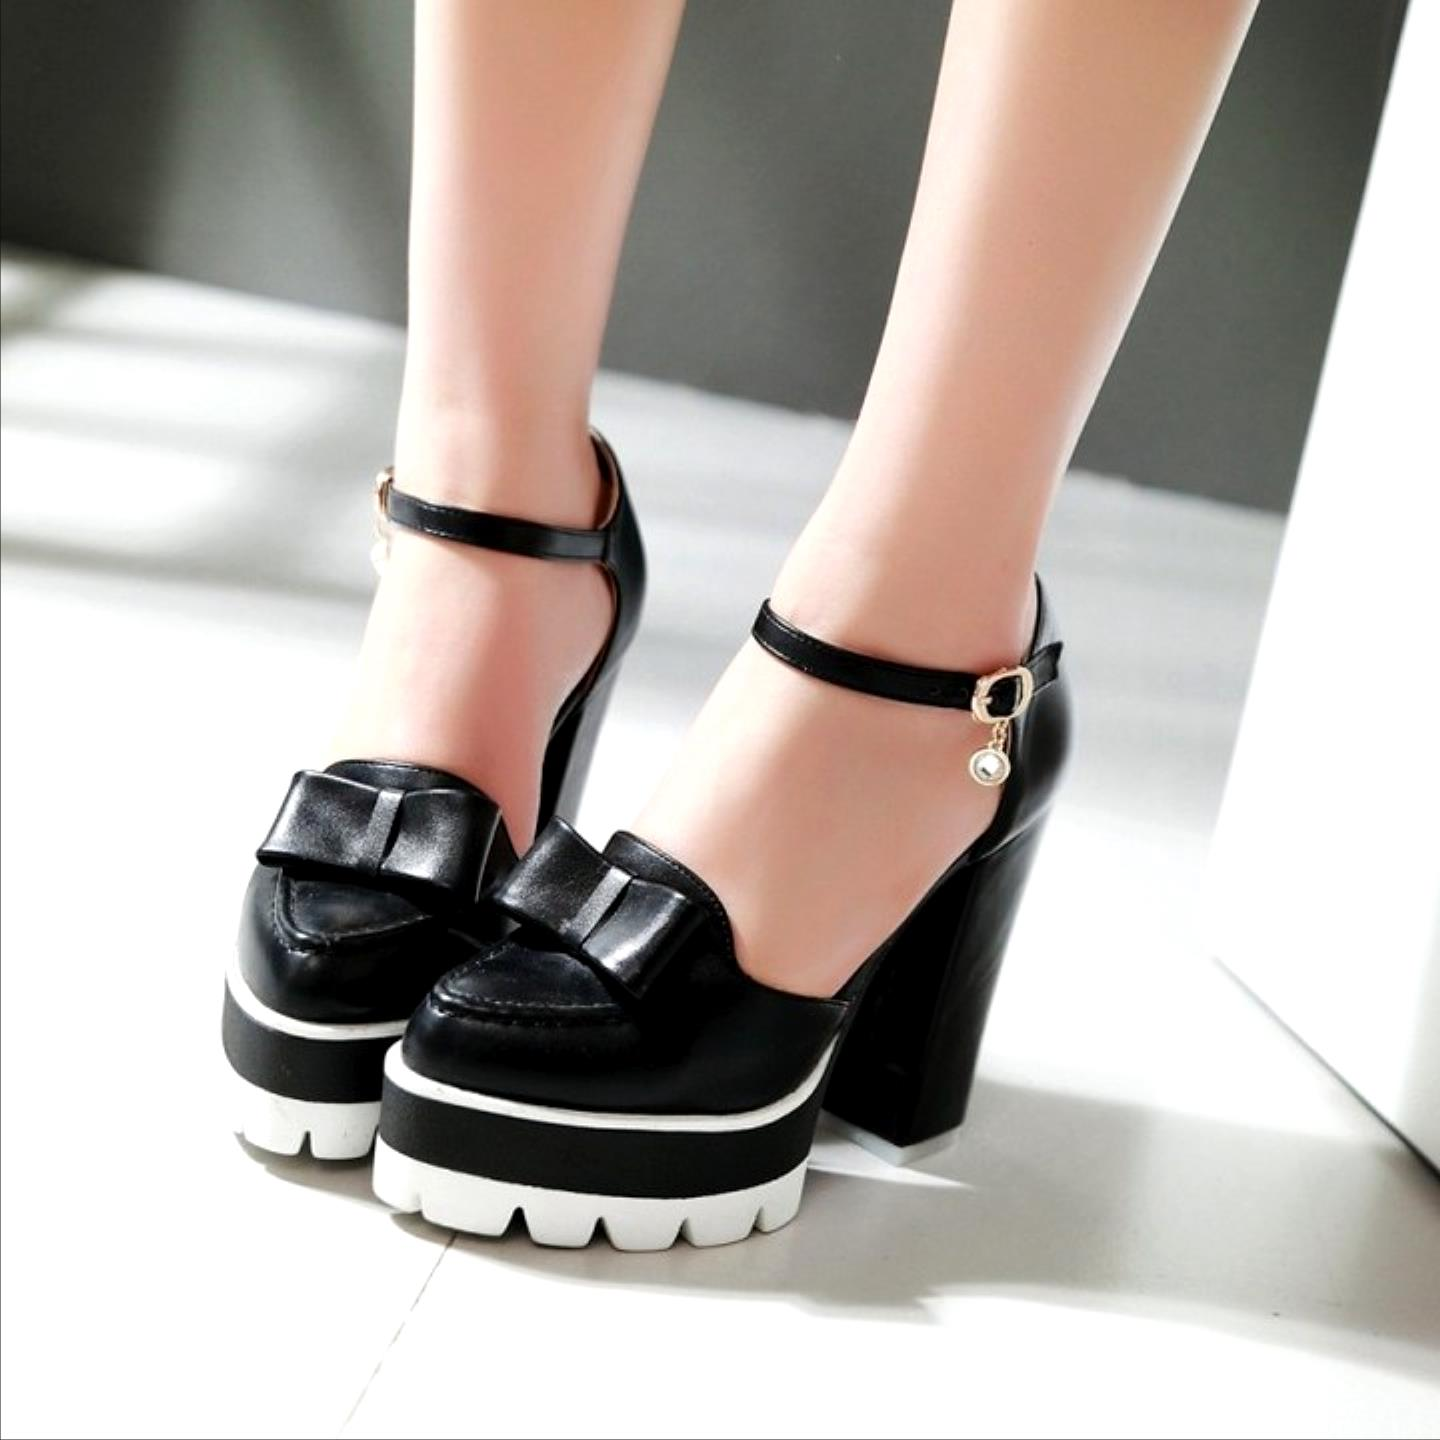 Big Size 32-43 Fashion Ankle Strap Sexy Pumps Platform High Heels Women Pumps Spring Summer Bowtie Wedding Party Shoes Woman big size 32 43 fashion party shoes woman sexy high heels platform summer pumps ankle strap sandals women shoes